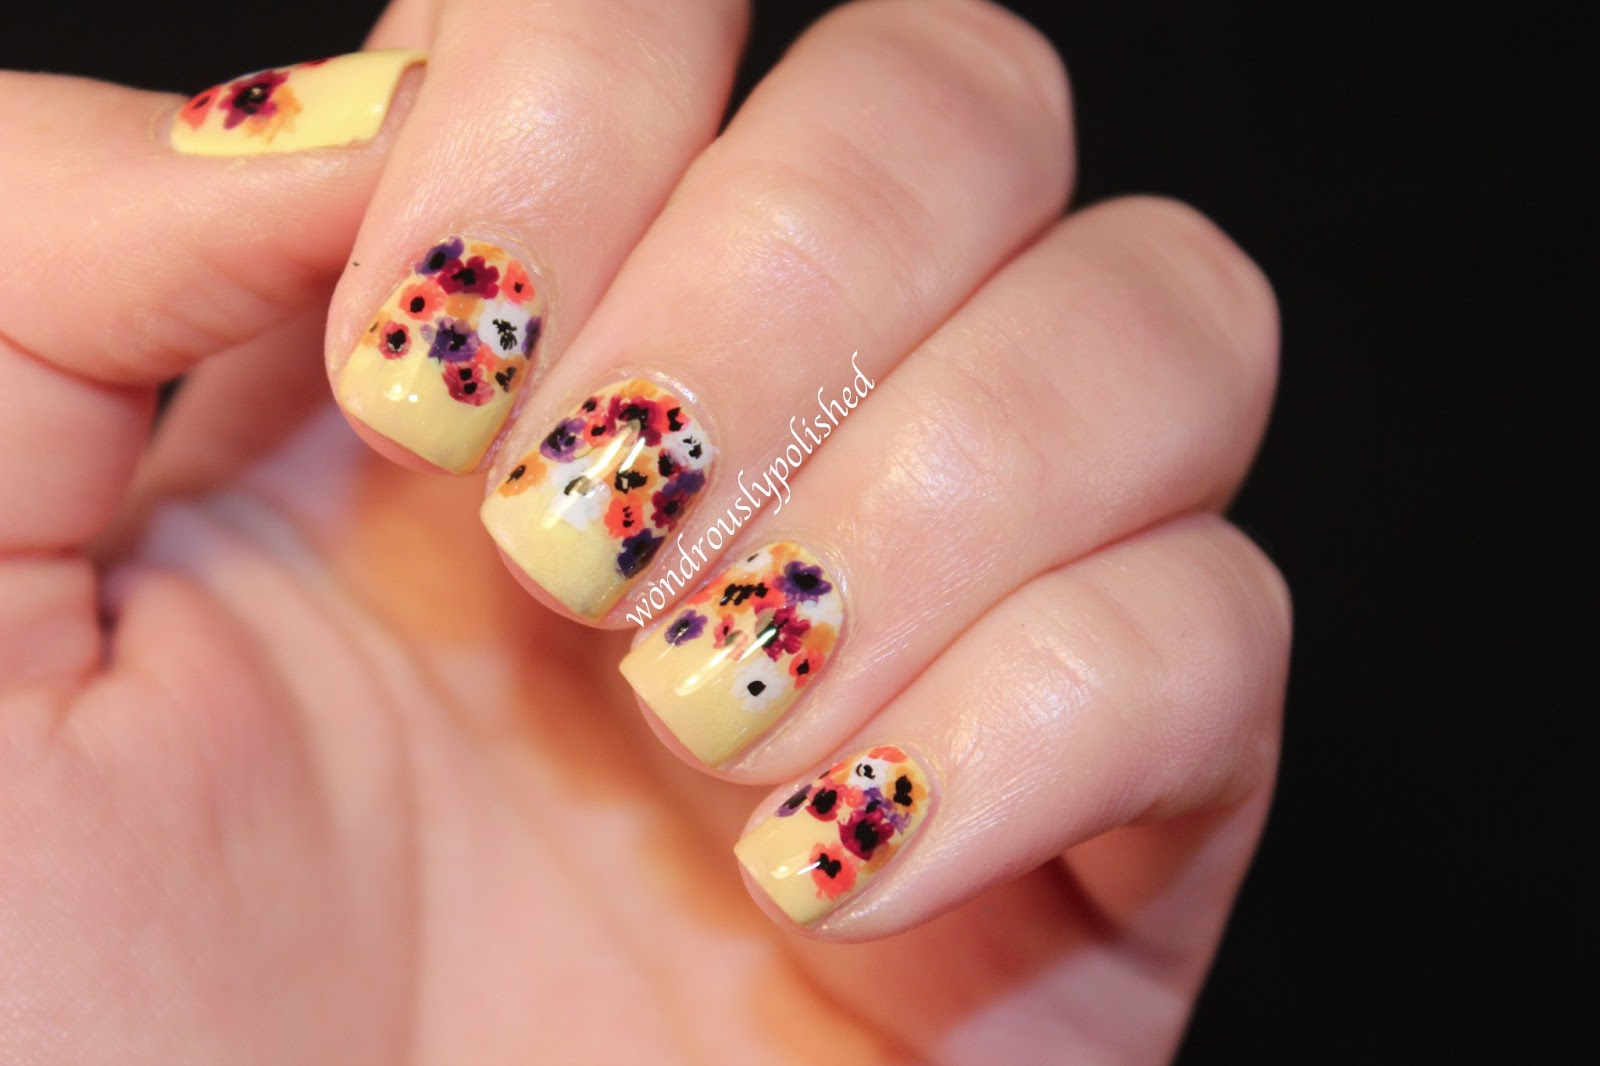 February Nail Art Challenge Day 2 Flowers